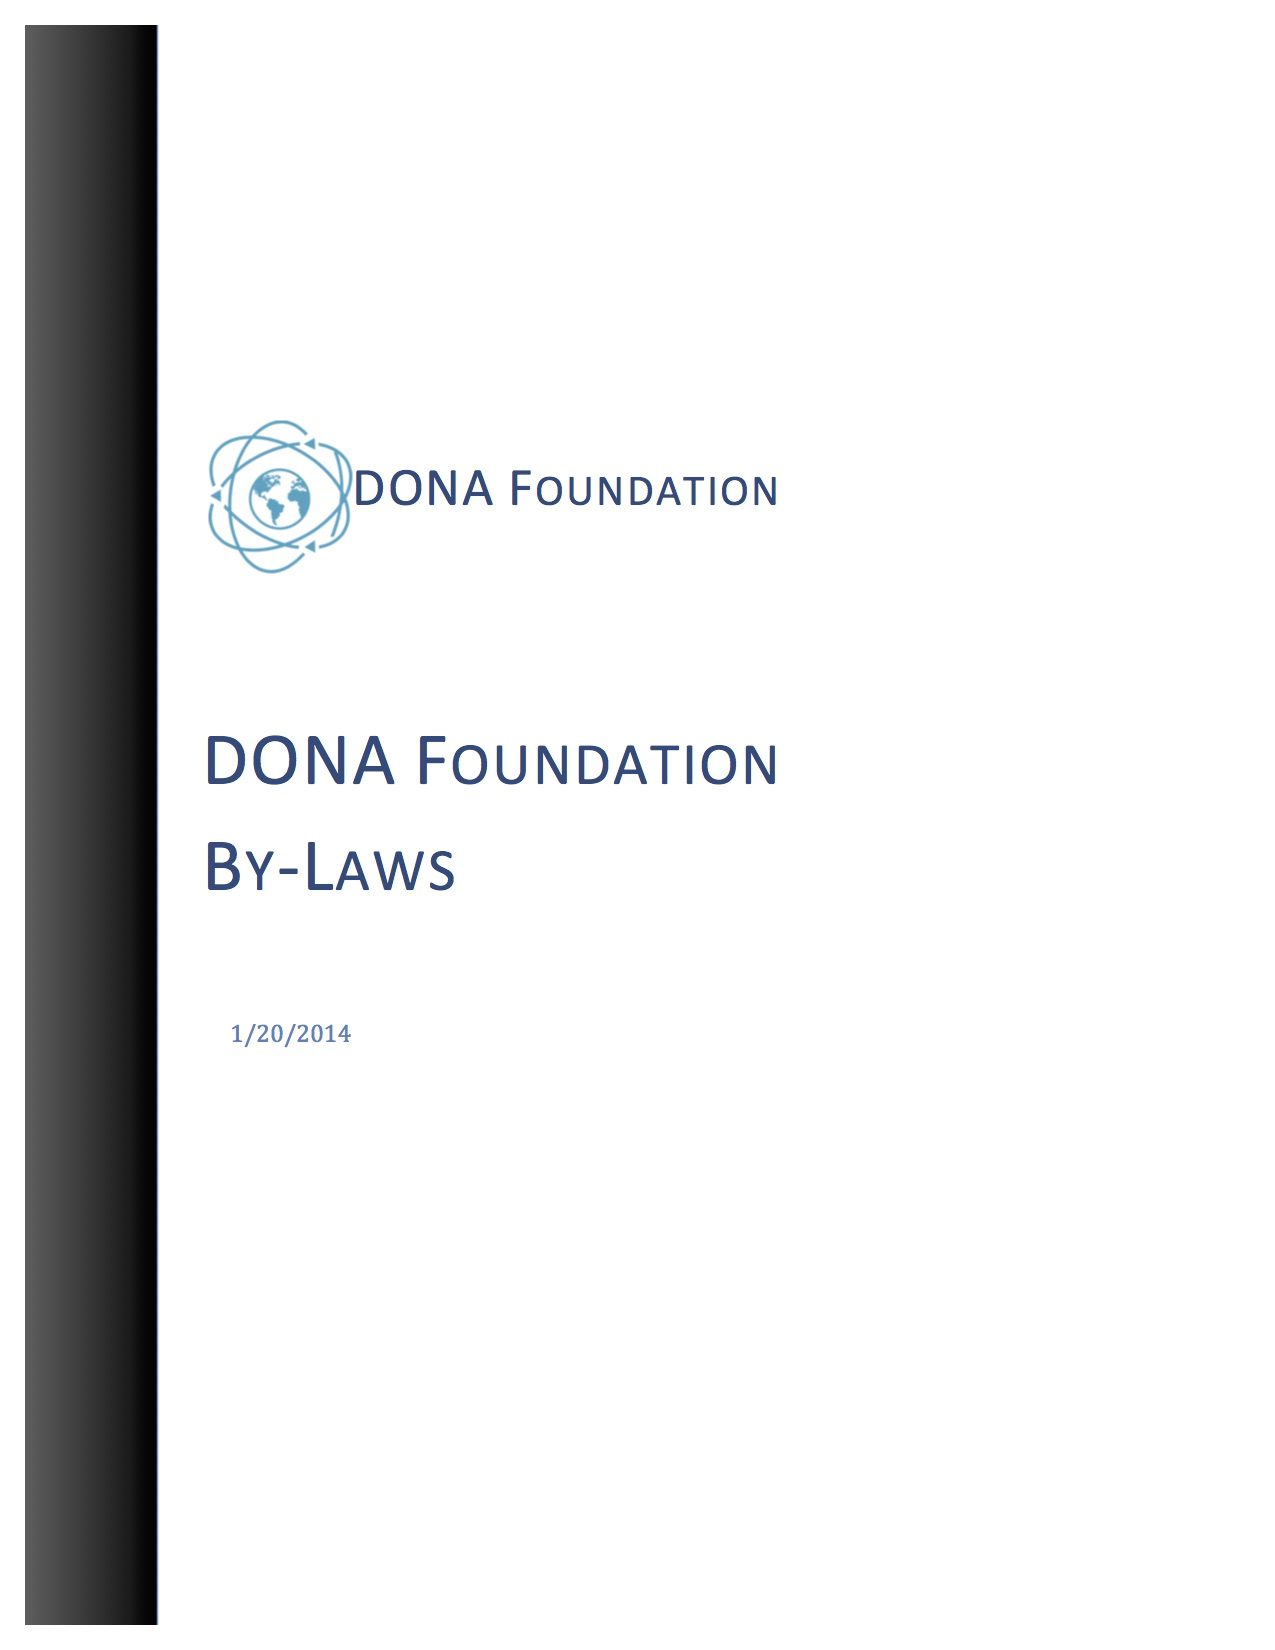 The DONA Foundation By-Laws